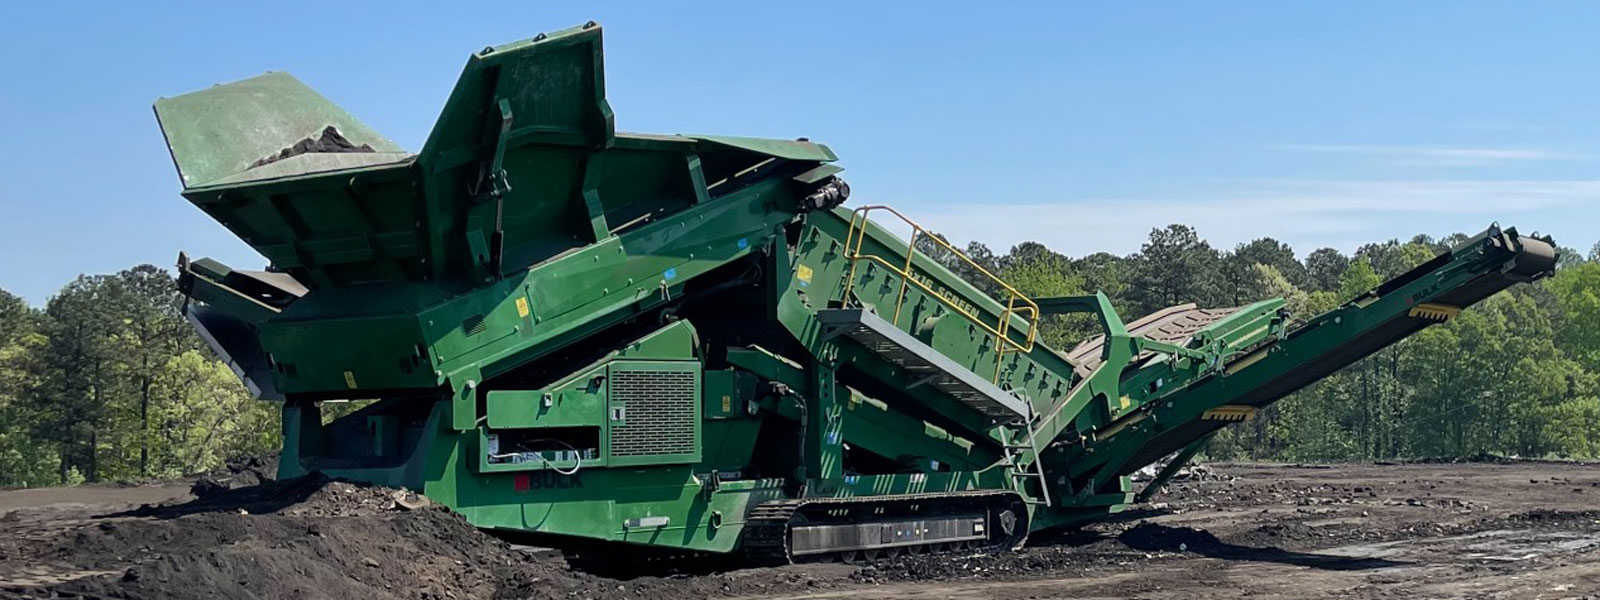 Green Mobile Screening Plant At Scrap Recycling Site